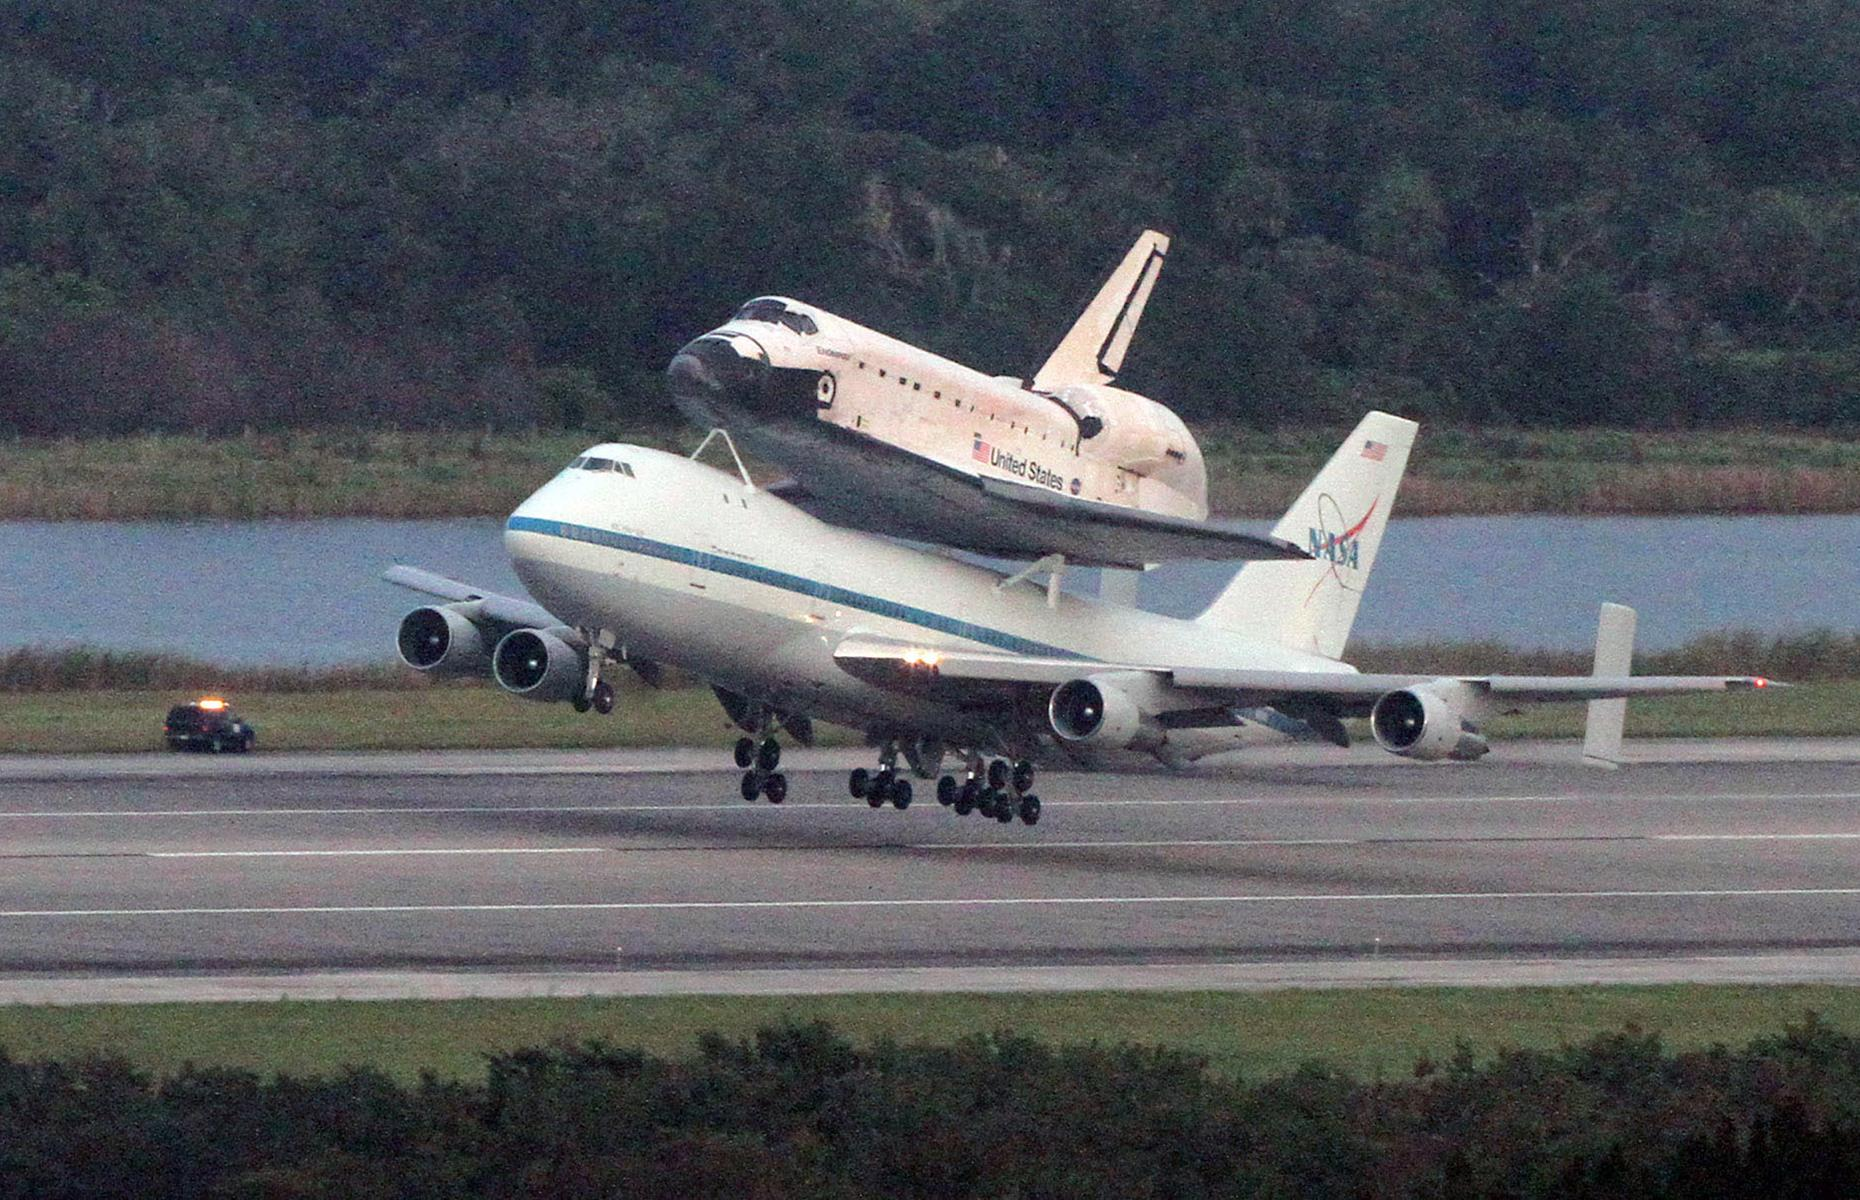 Slide 34 of 35: The plane could carry hundreds of passengers across continents, making mass tourism possible and affordable. The airliner also famously carried the Space Shuttle on its back in 2012, when the Endeavour spacecraft was moved from the Kennedy Space Center in Florida to Los Angeles, California.